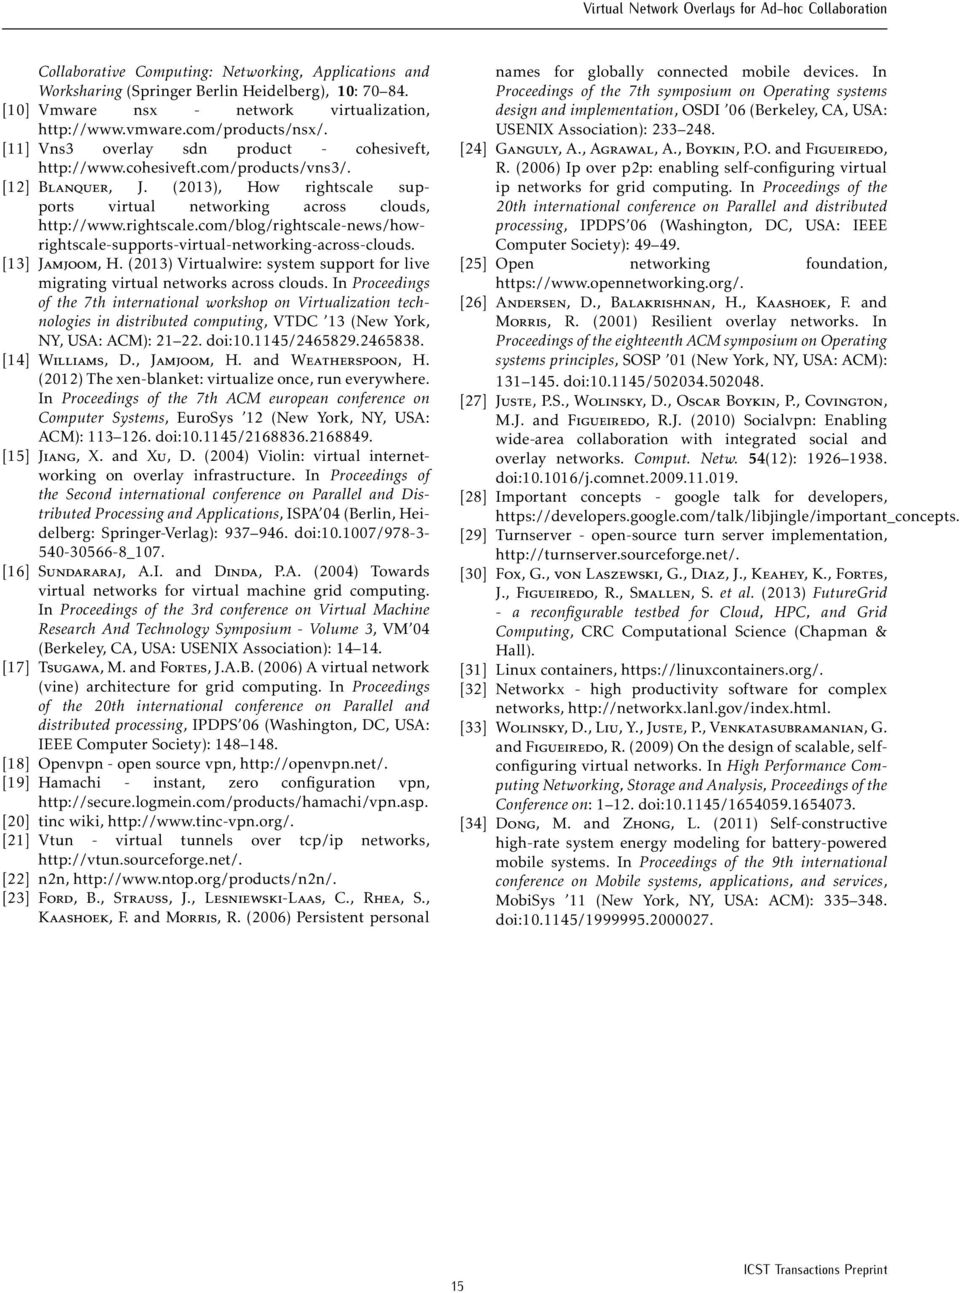 (2013), How rightscale supports virtual networking across clouds, http://www.rightscale.com/blog/rightscale-news/howrightscale-supports-virtual-networking-across-clouds. [13] Jamjoom, H.